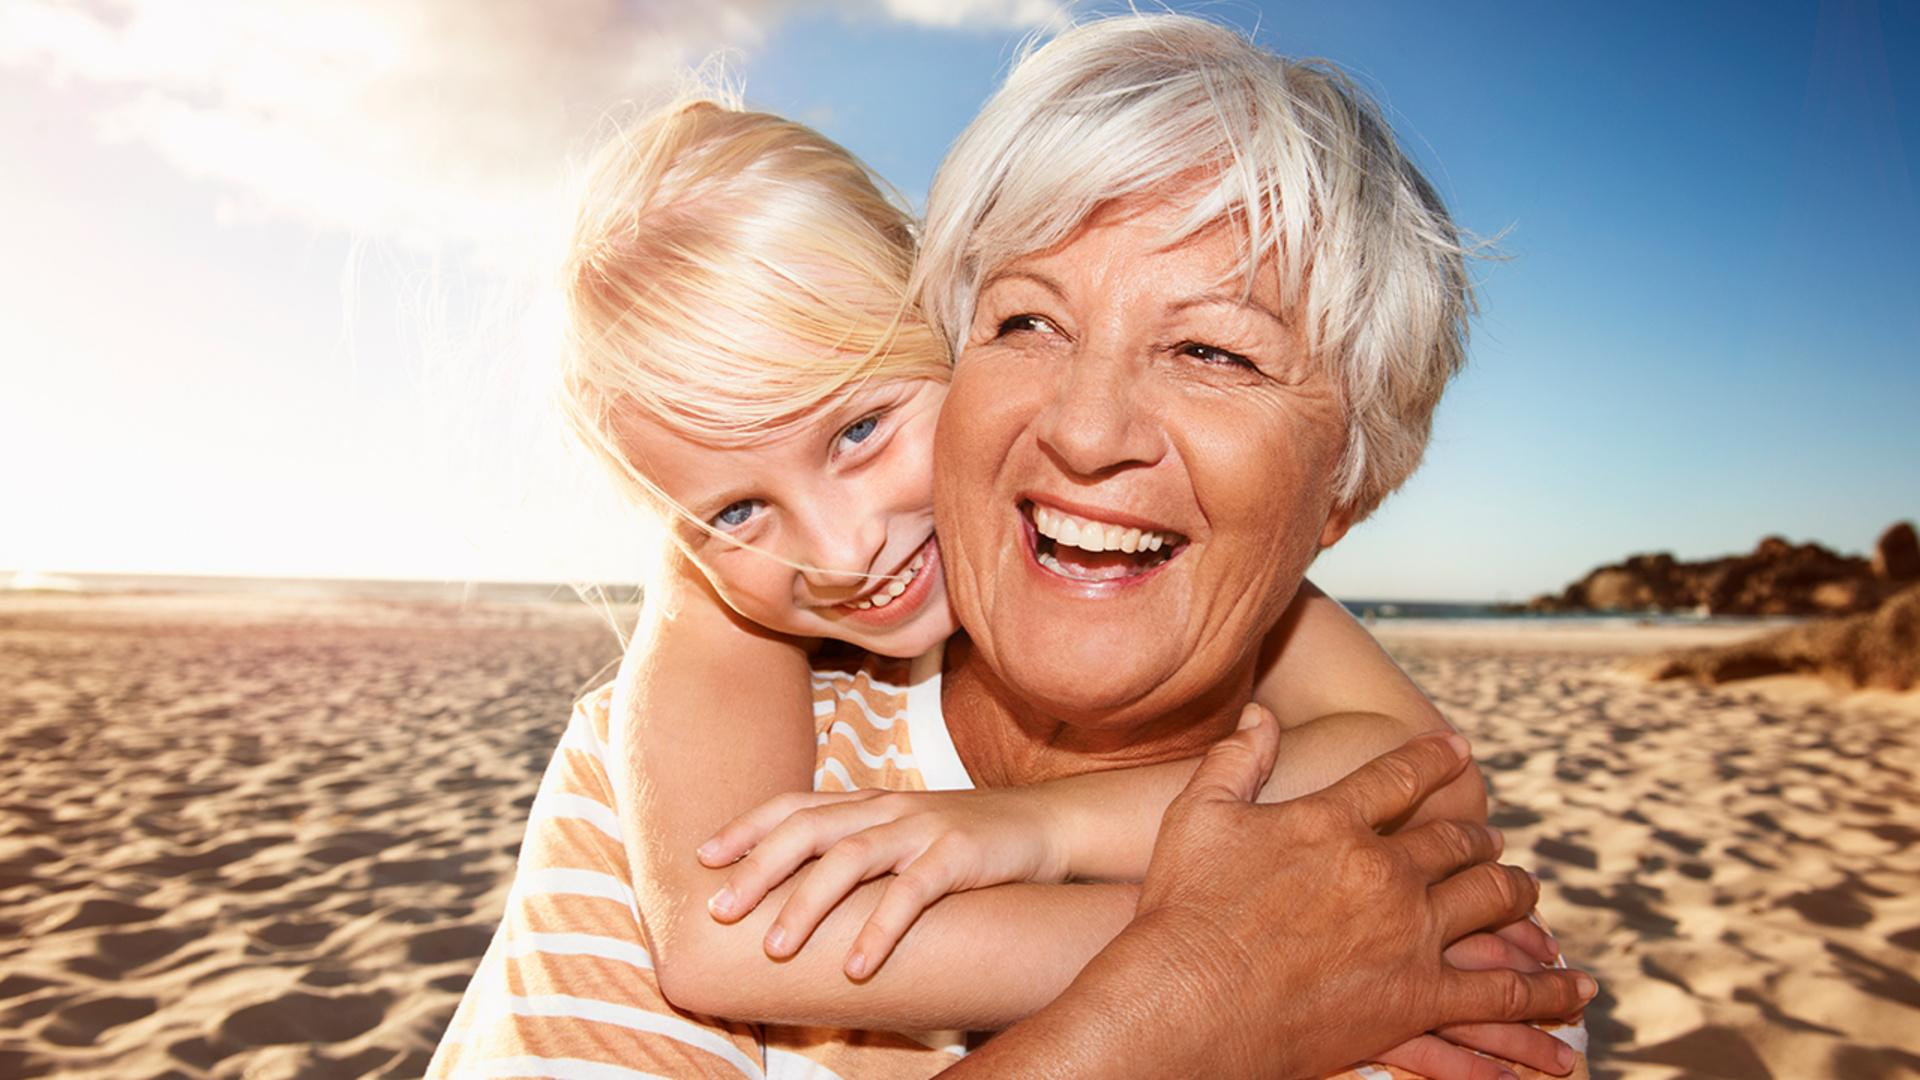 Research Shows Grandmothers' Brains Benefit From Babysitting